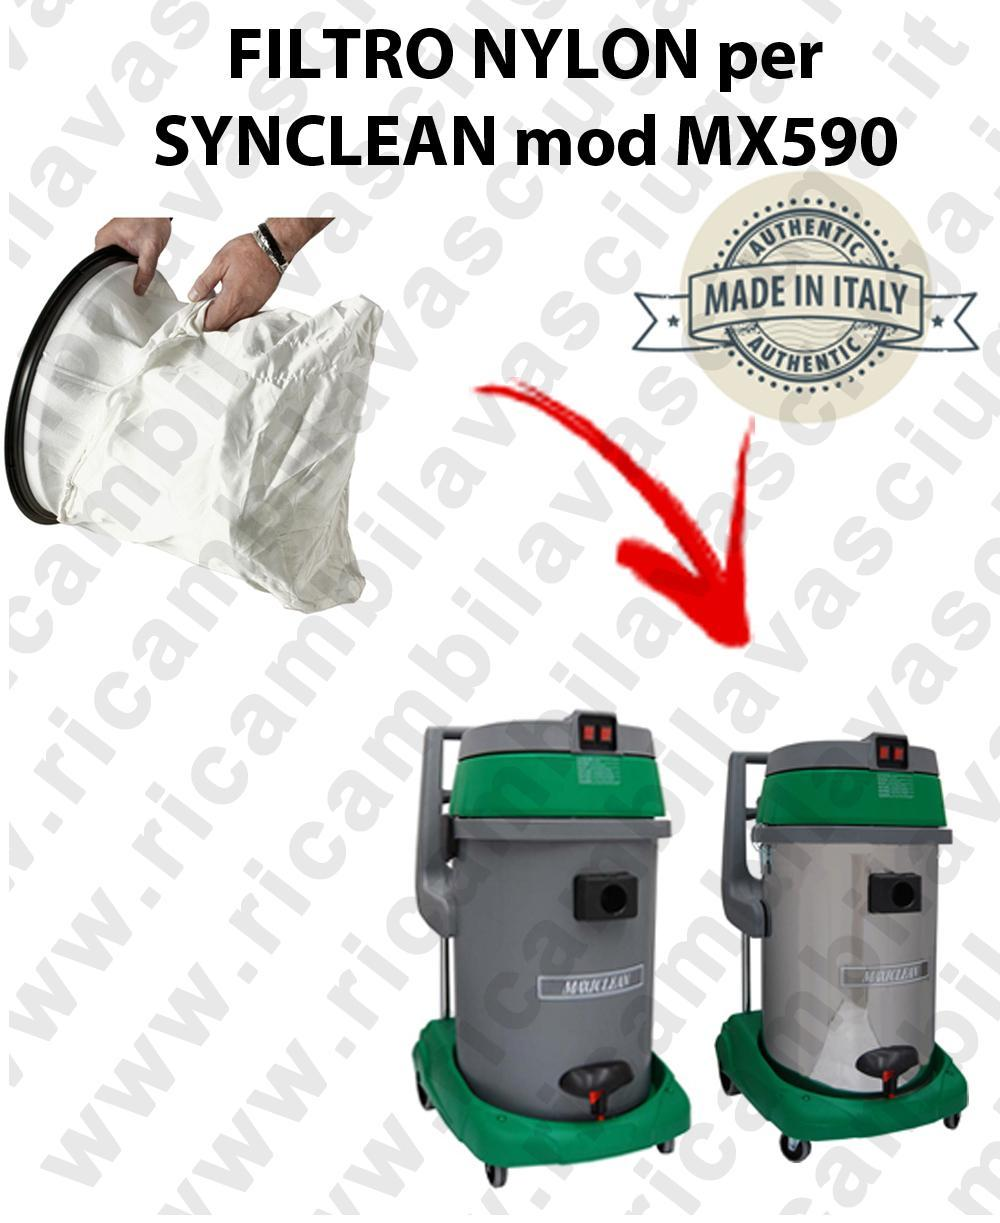 SAC  FILTRE NYLON cod: 3001220 pour aspirateur MAXICLEAN Reference MX590 BY SYNCLEAN